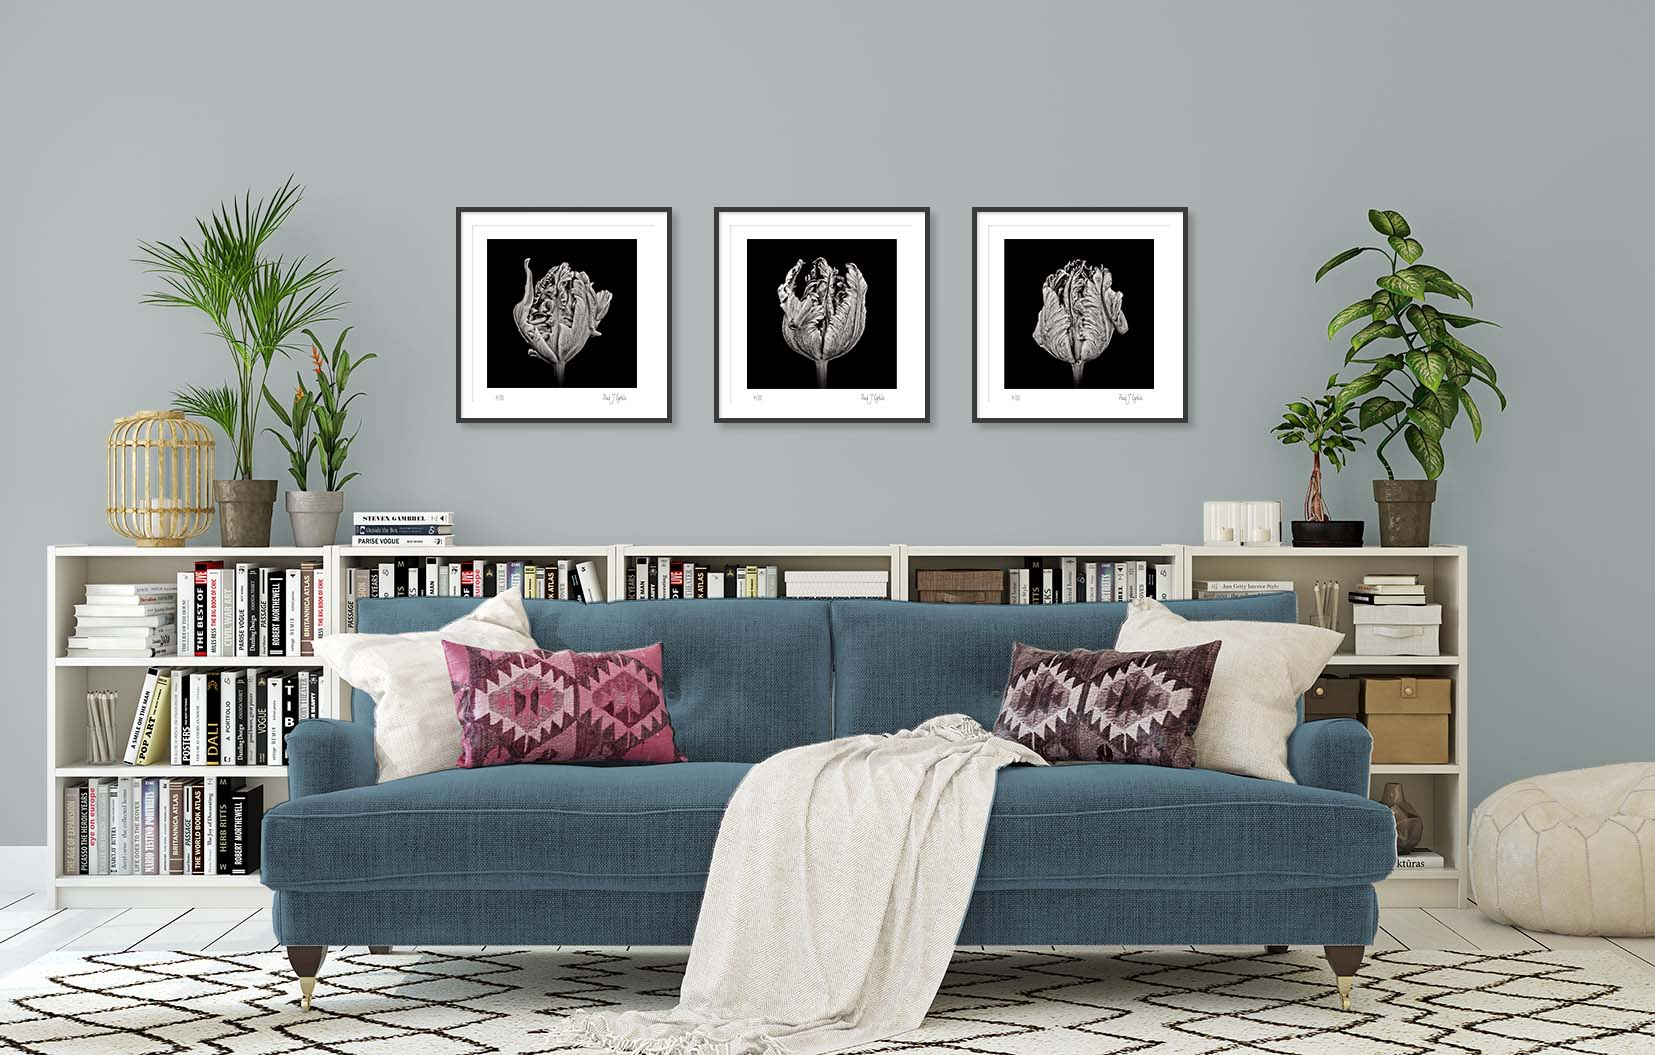 Three black and white floral prints of a black parrot tulip by fine art photographer Paul Coghlin FBIPP